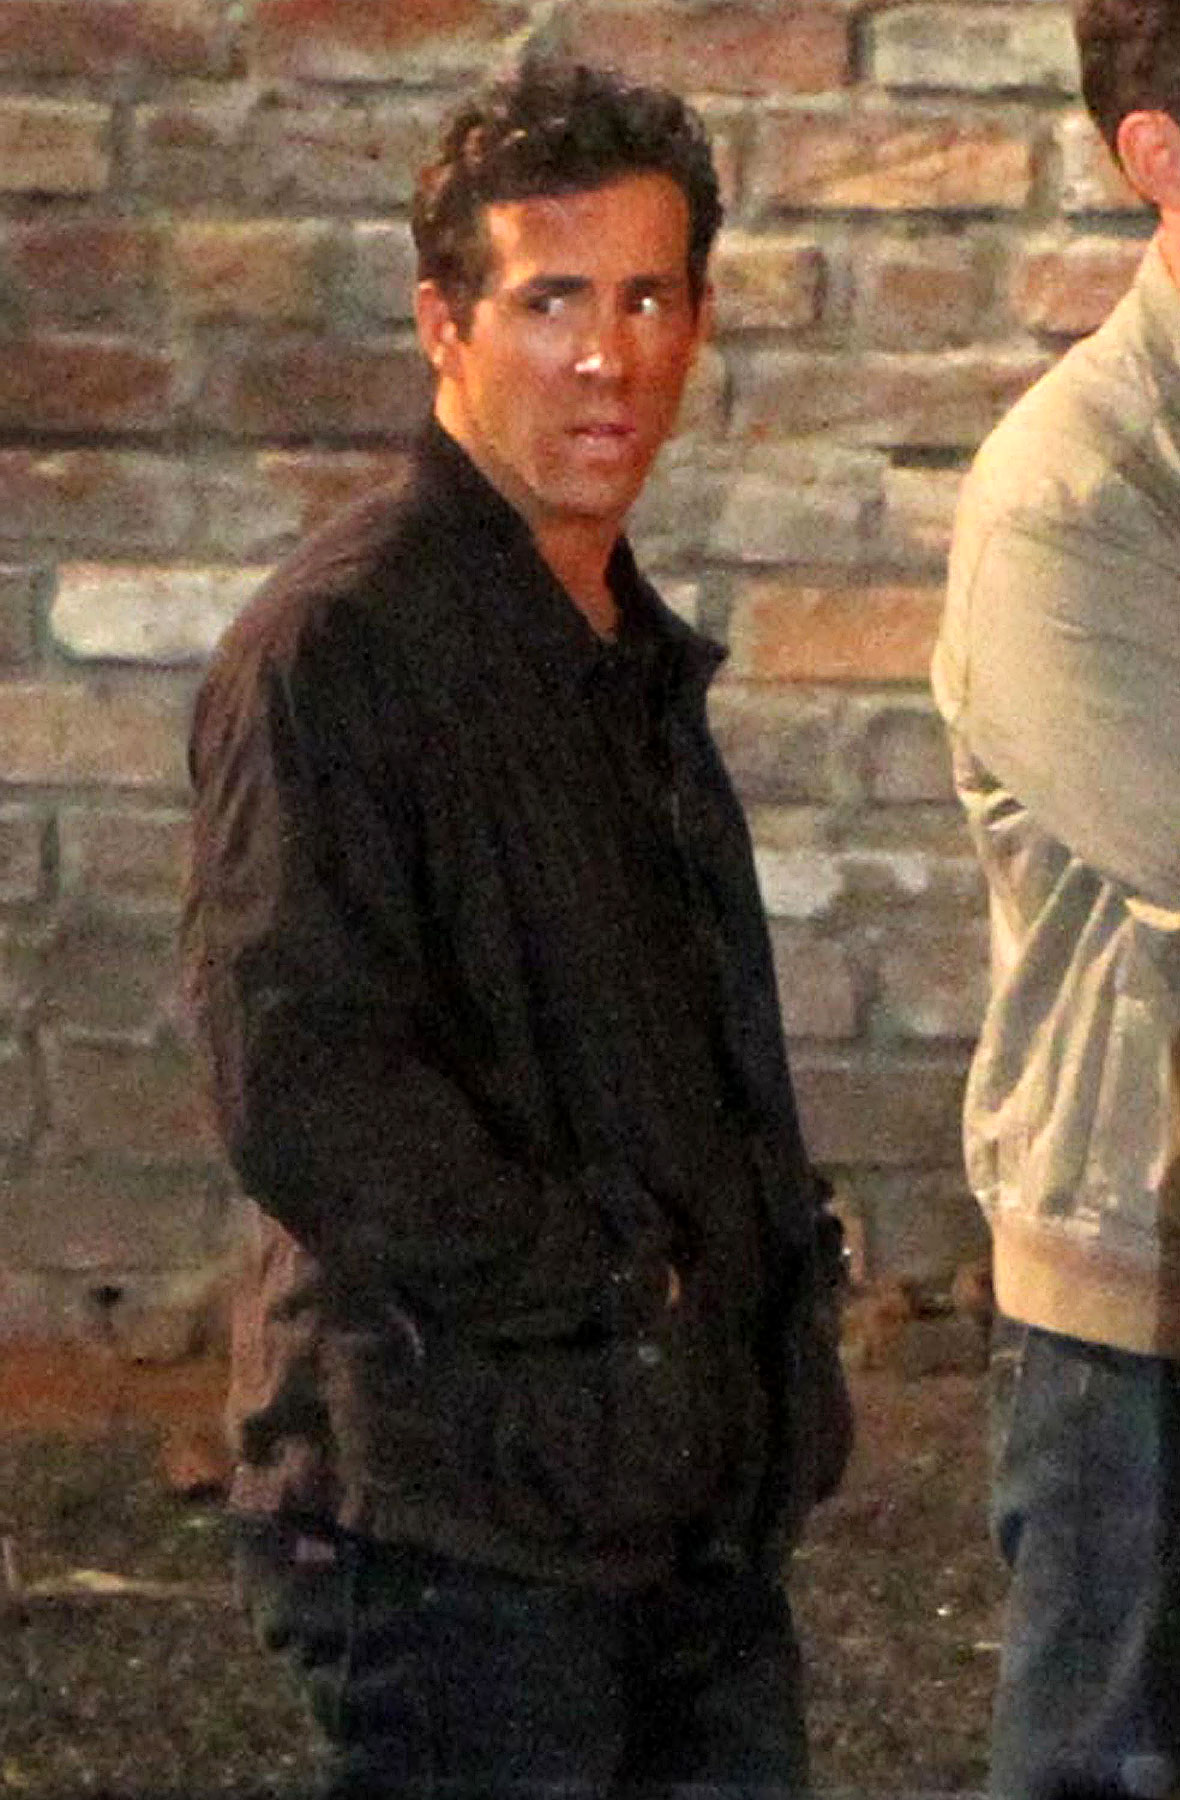 Ryan Reynolds Prepares to Play a Hot Superhero Again on the 'Green Lantern' Set (PHOTOS)